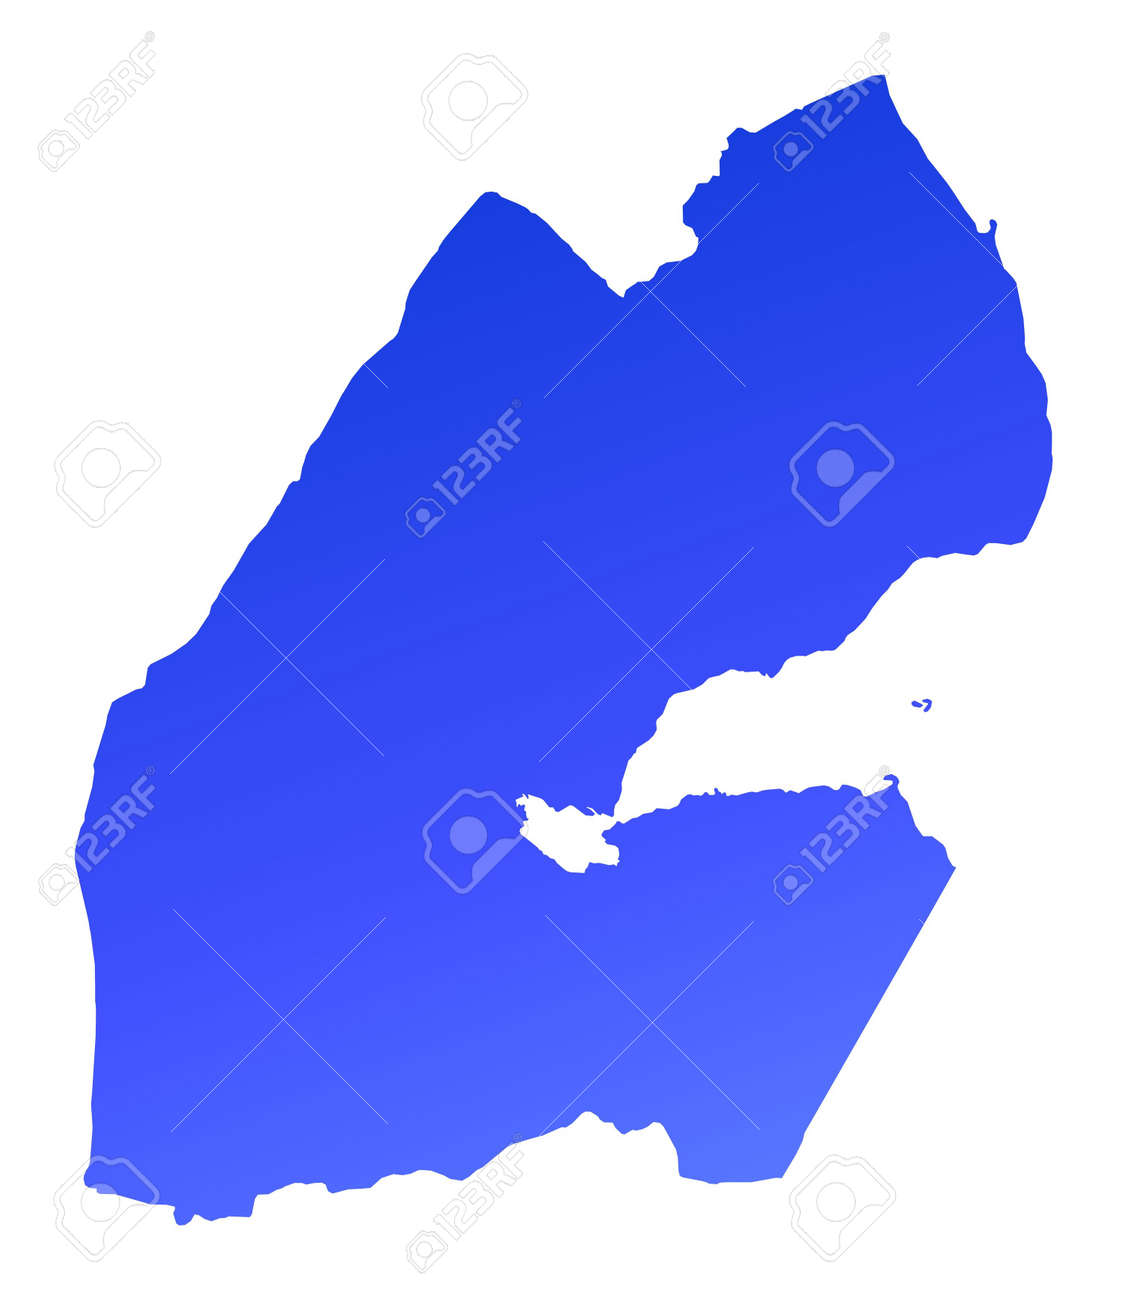 Blue Gradient Djibouti Map. Detailed, Mercator Projection. Stock ...